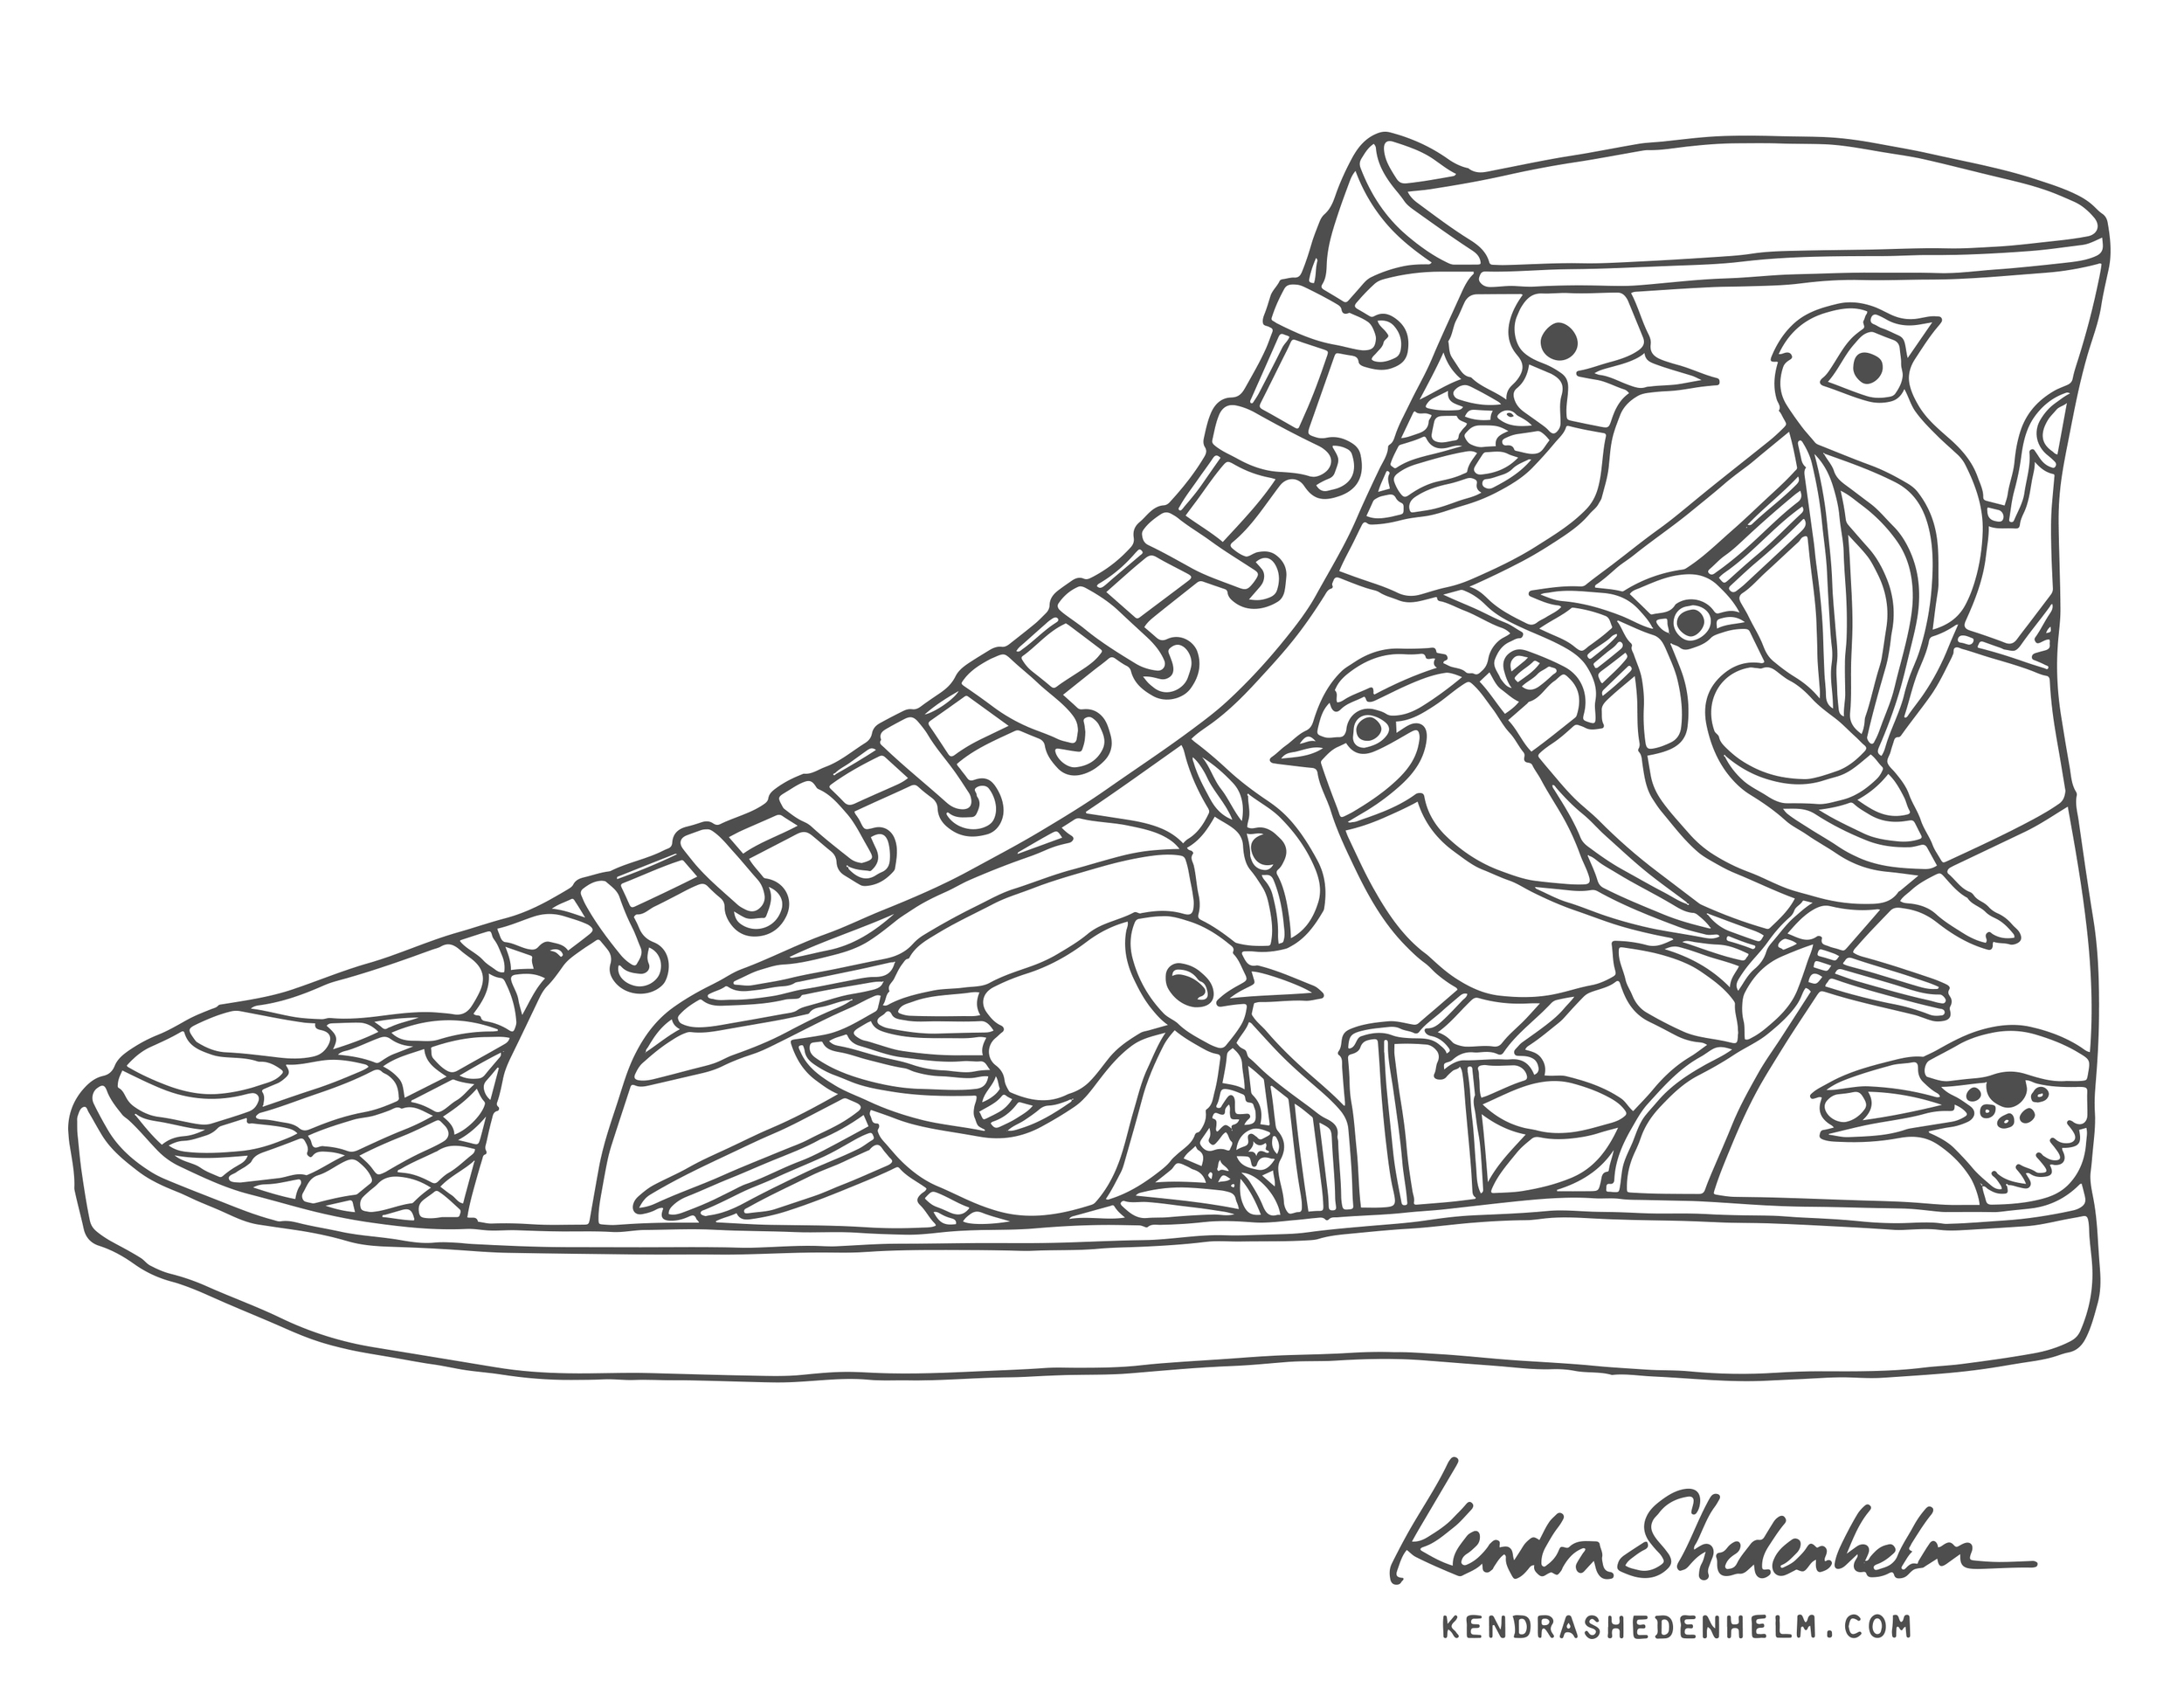 Birds Doodles Shoes And Free Coloring Pages Kendra Shedenhelm